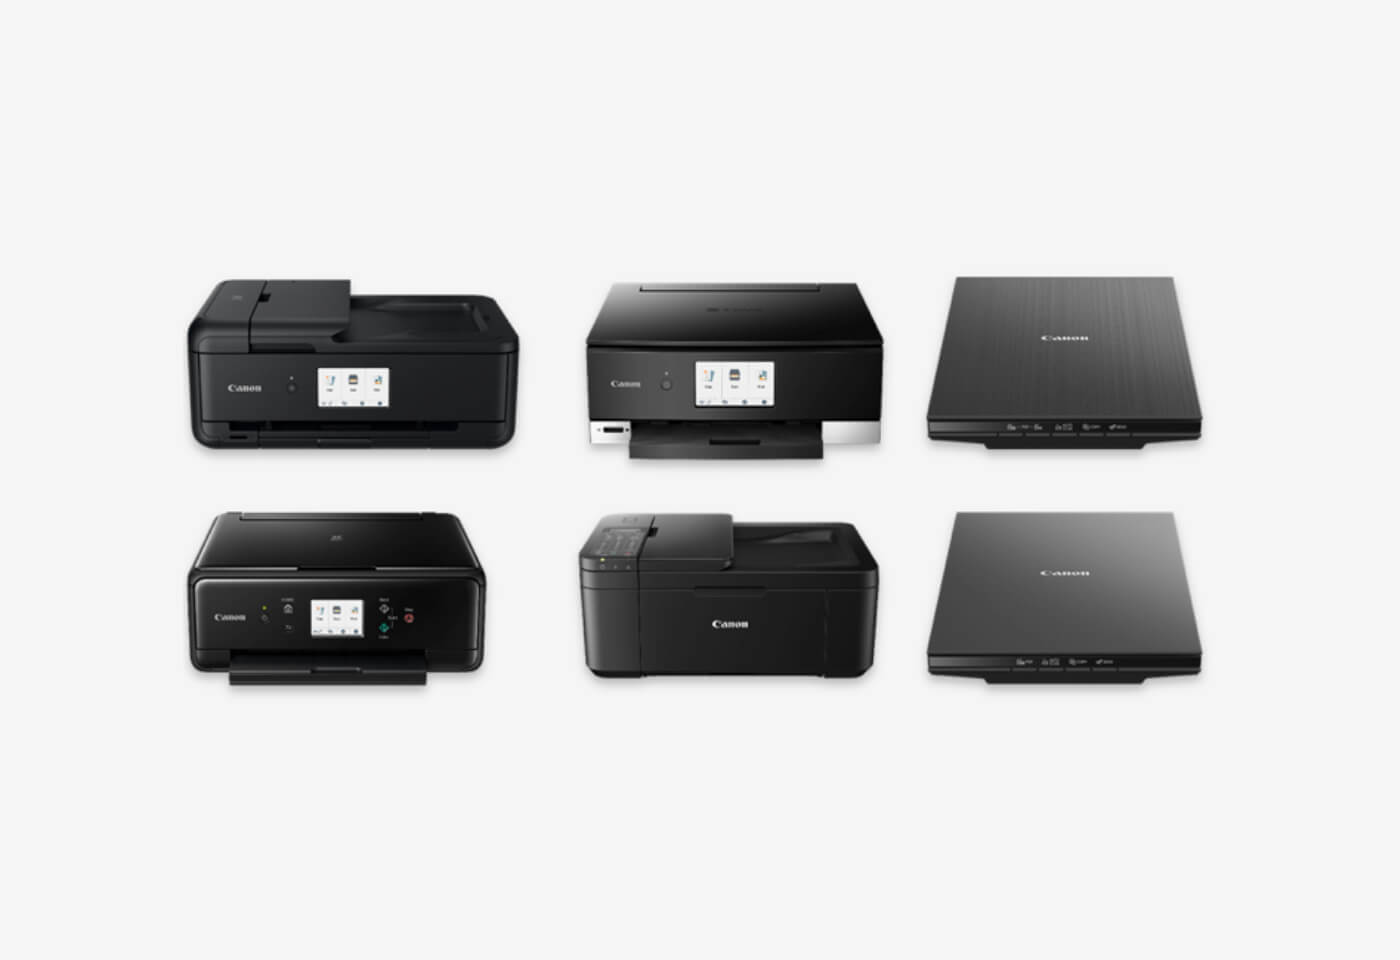 Canon unveils its latest range of PIXMA inkjet printers and